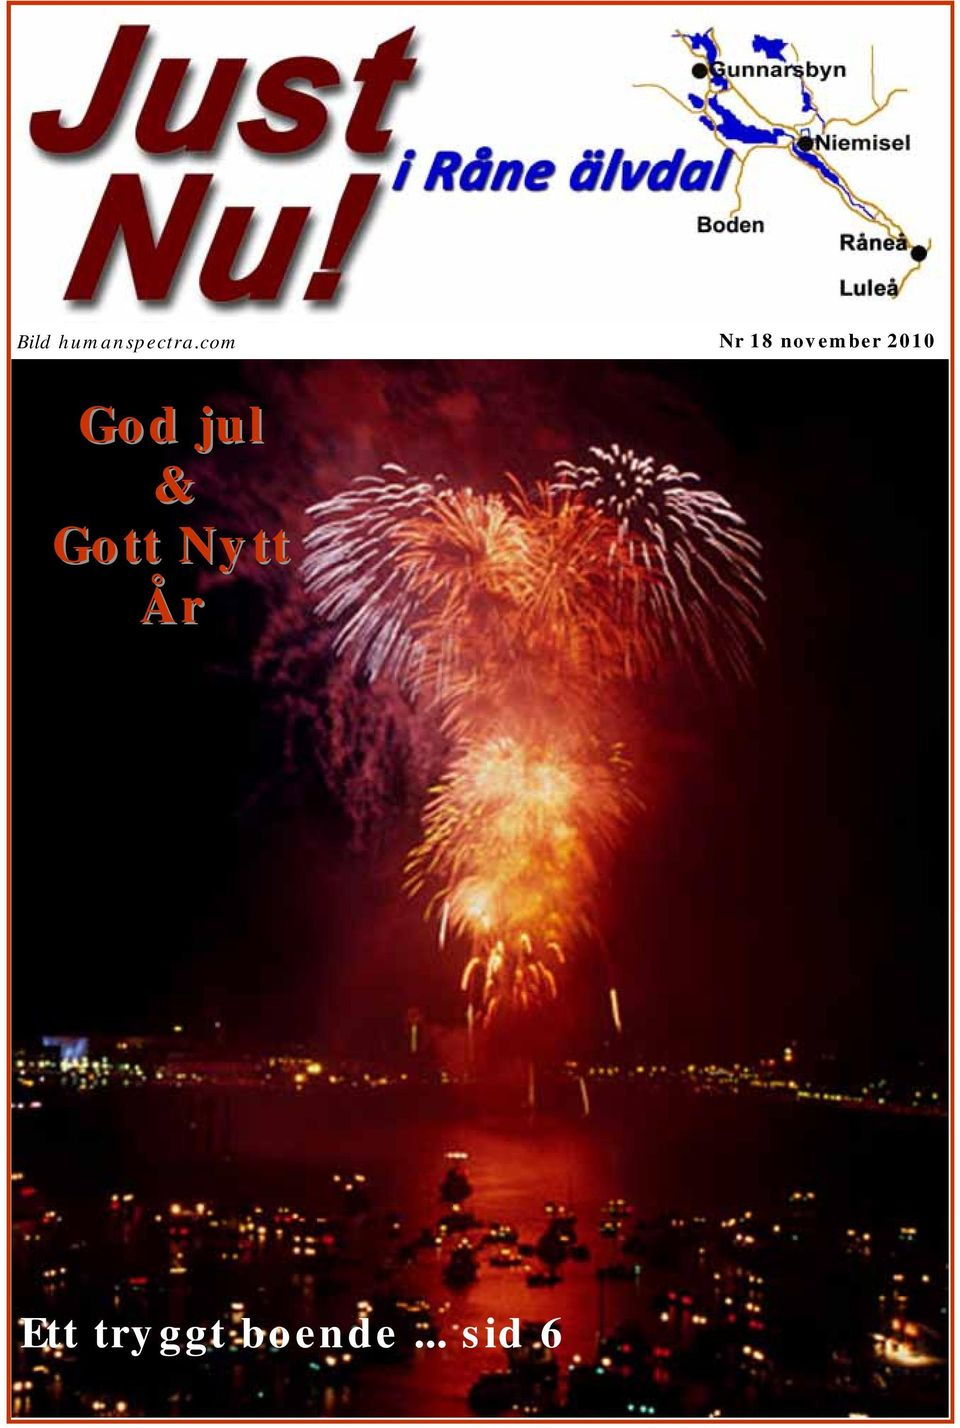 2010 God jul & Gott